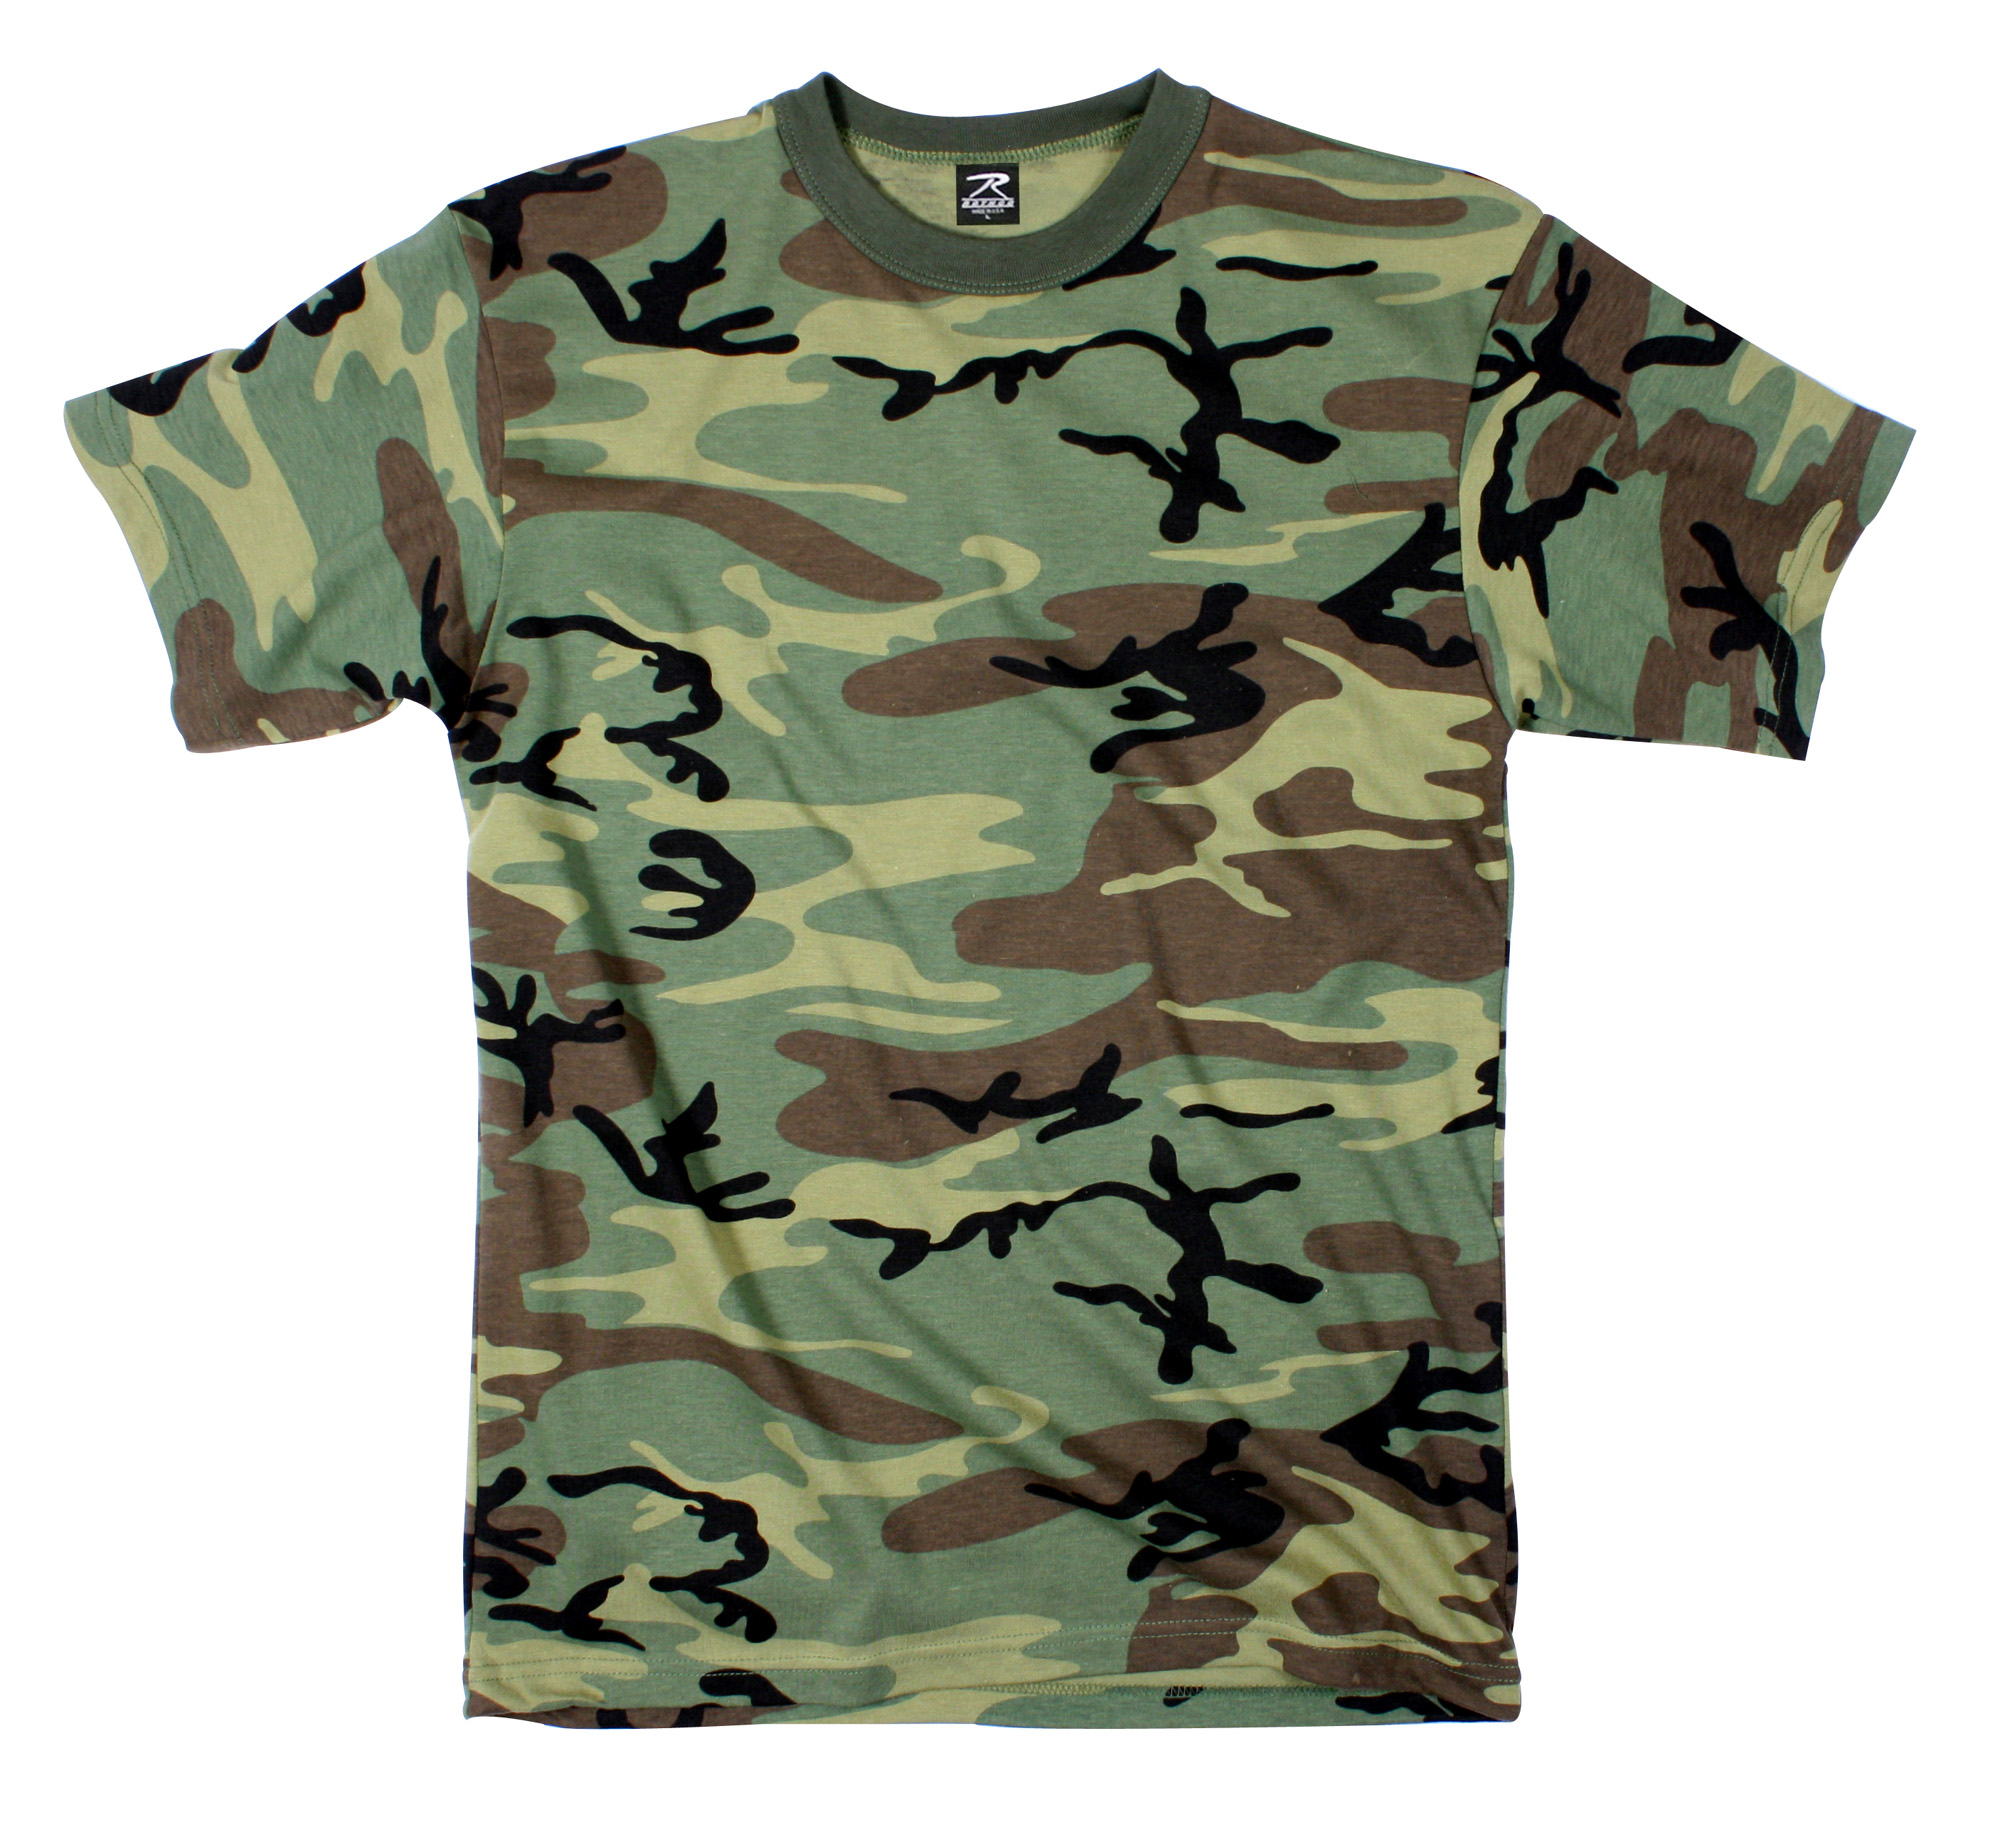 rothco t shirt woodland camo 7x all pro outfittersall pro. Black Bedroom Furniture Sets. Home Design Ideas